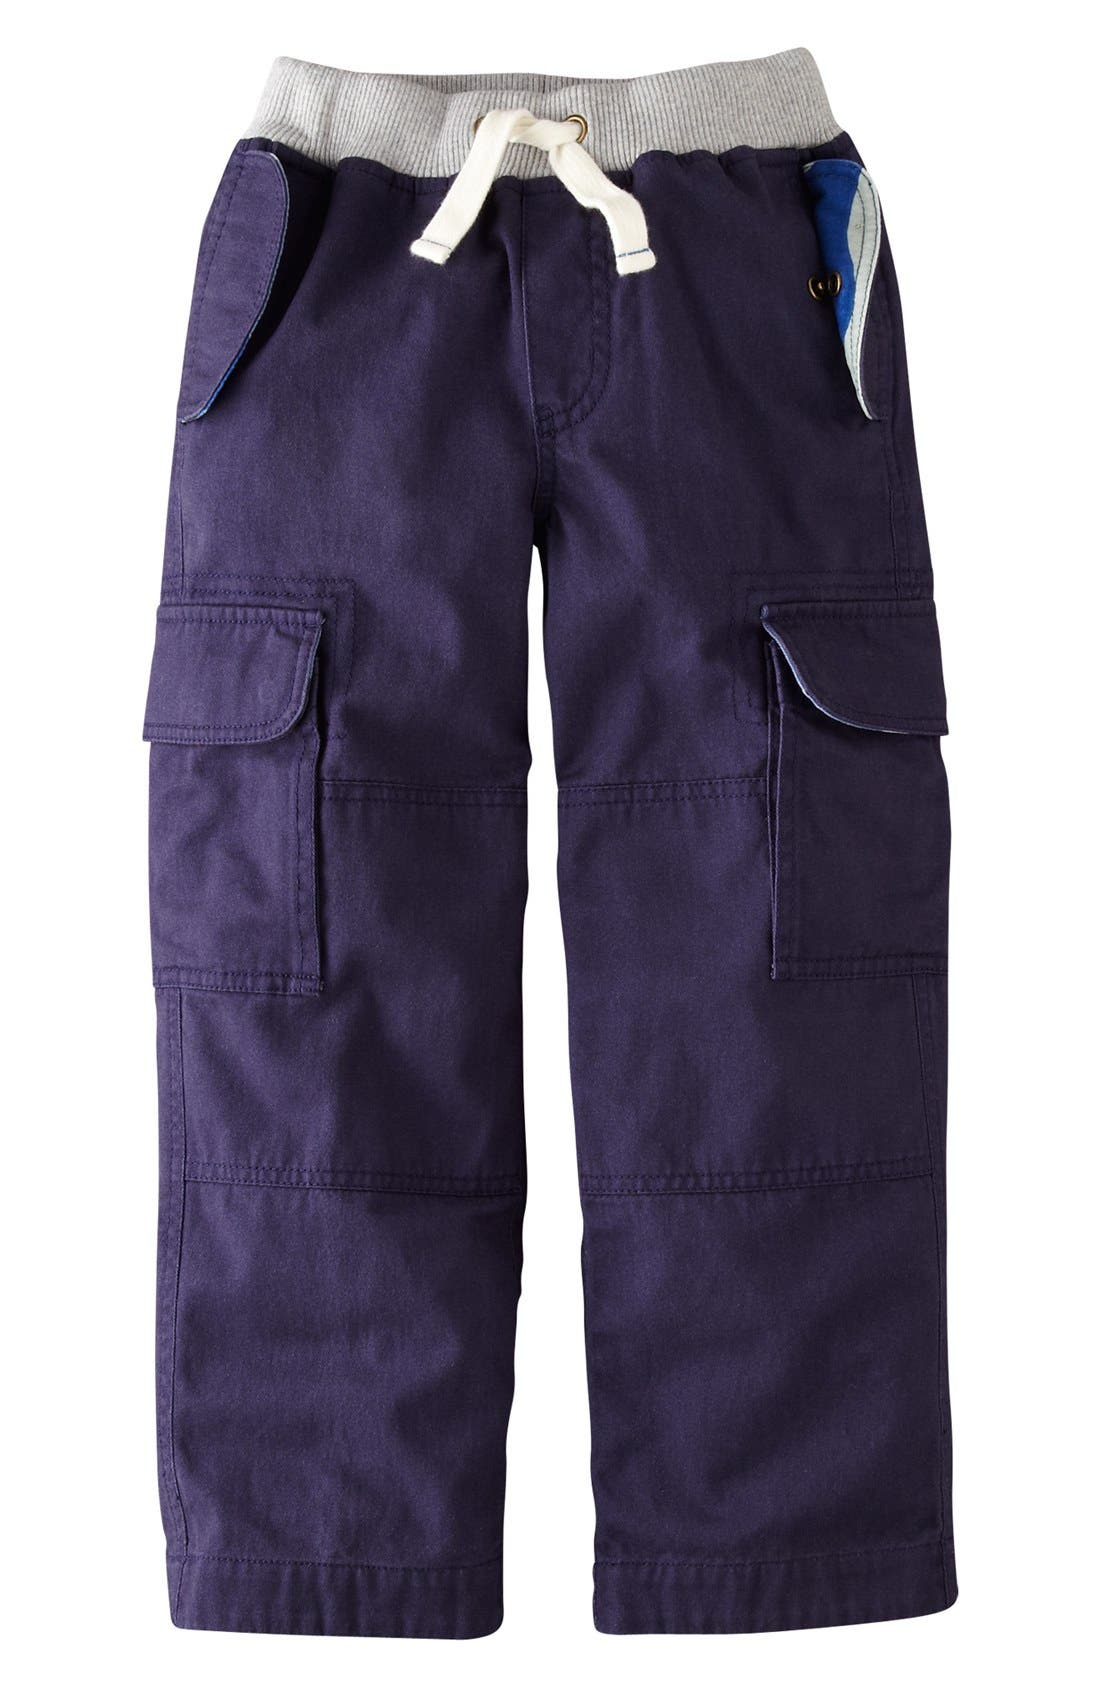 Alternate Image 1 Selected - Mini Boden Ribbed Waist Cargo Pants (Toddler Boys, Little Boys & Big Boys)